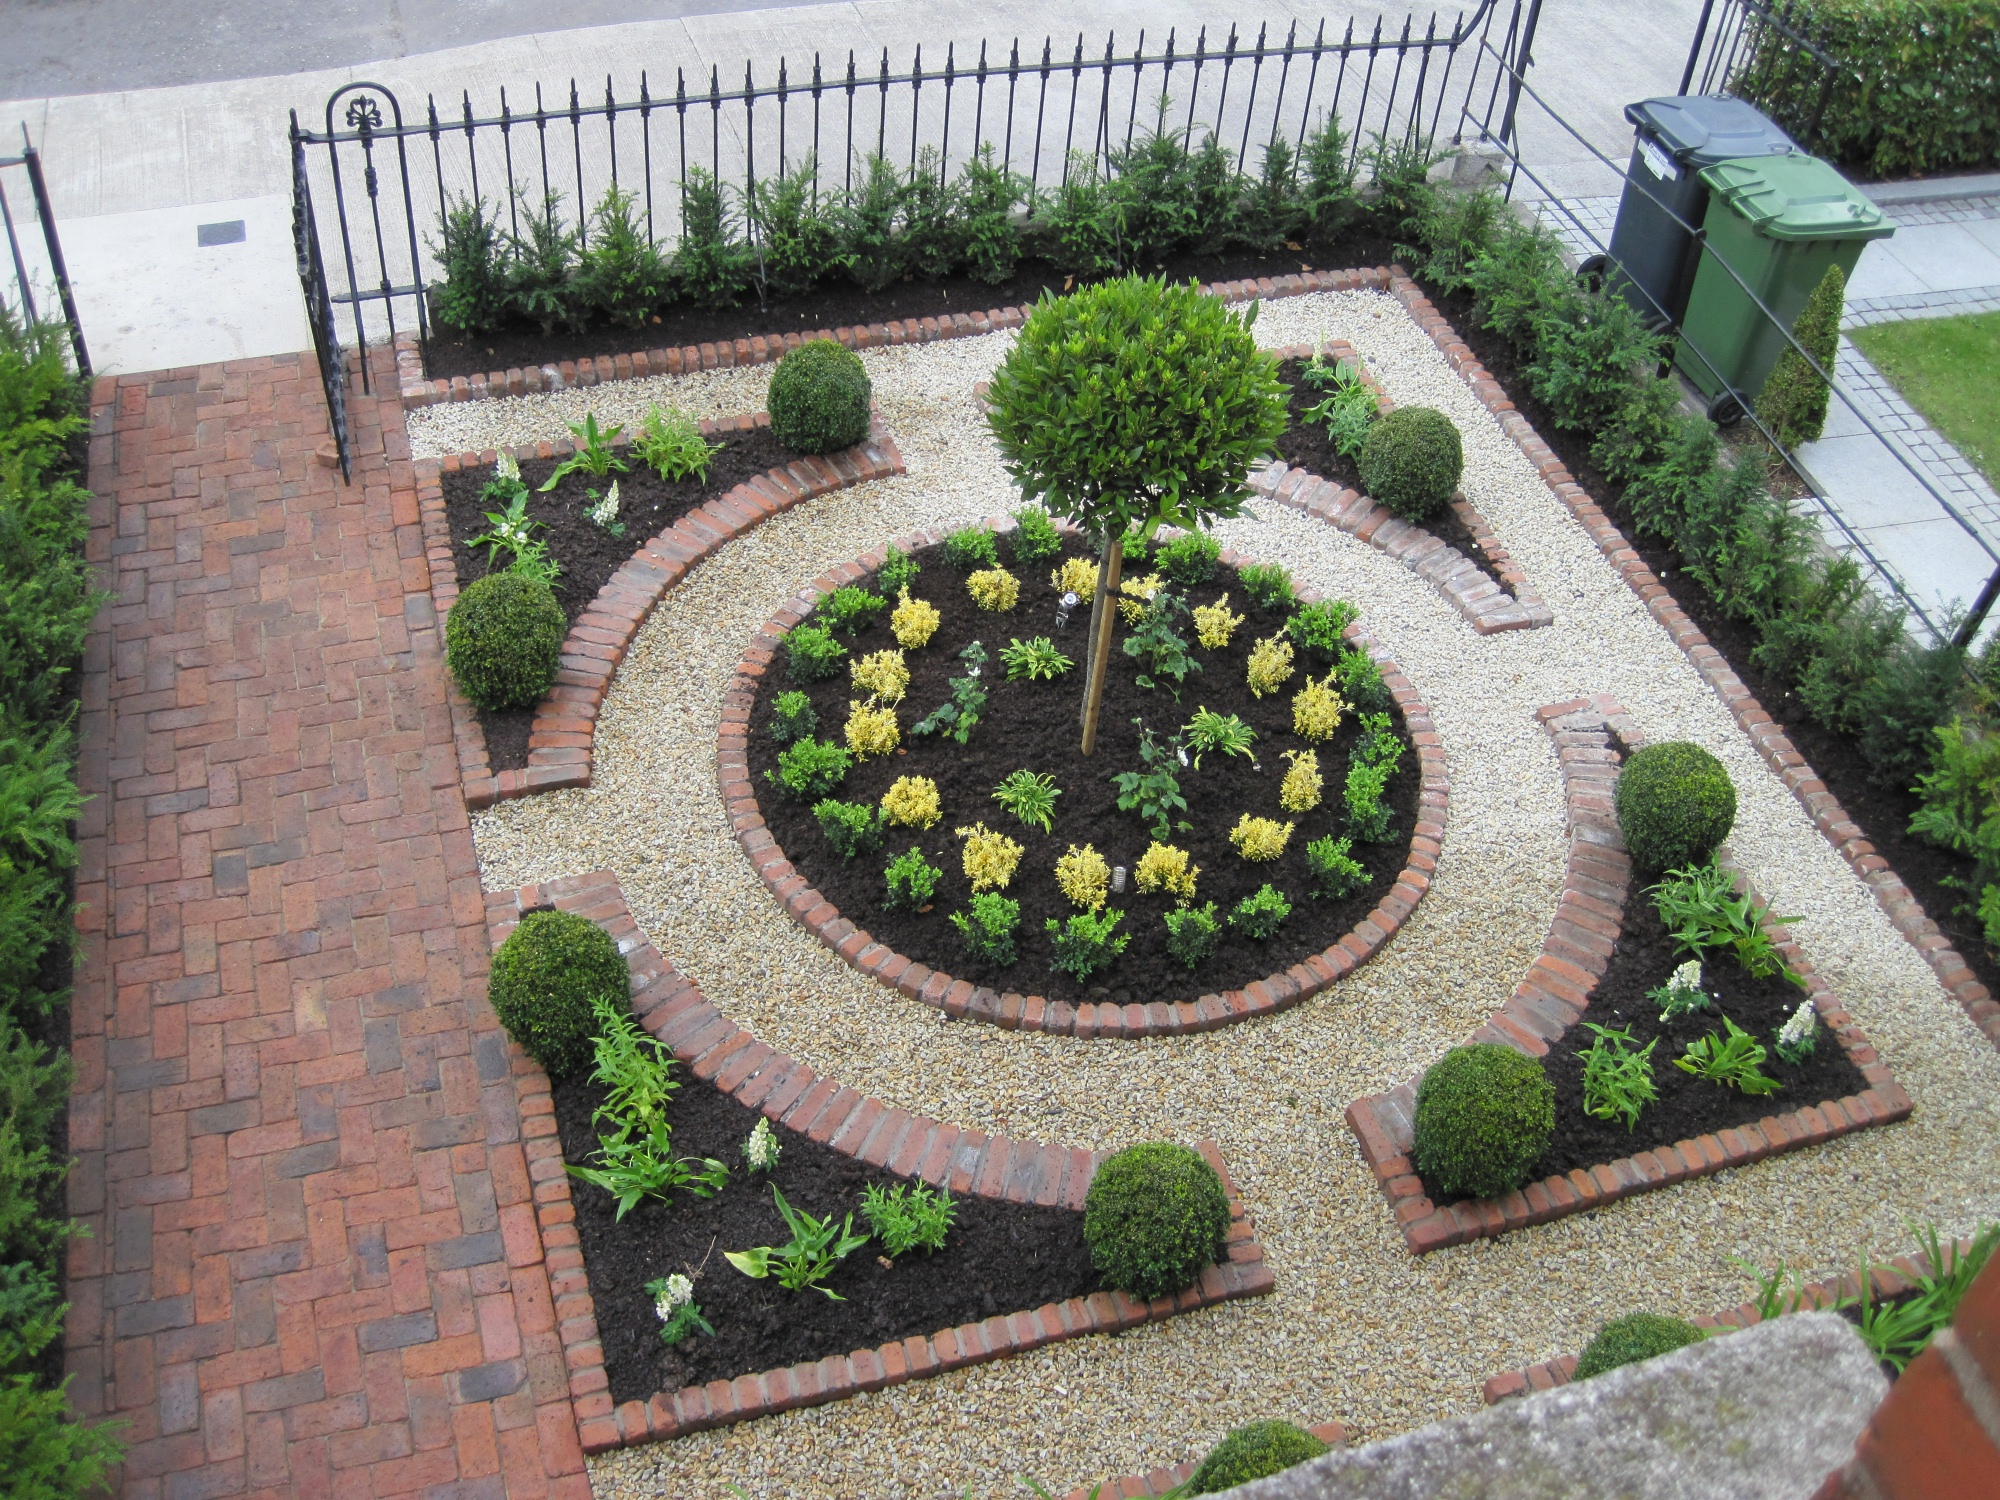 Astounding Formal Parterre For A Front Garden Garden Design Dublin Home Interior And Landscaping Ferensignezvosmurscom